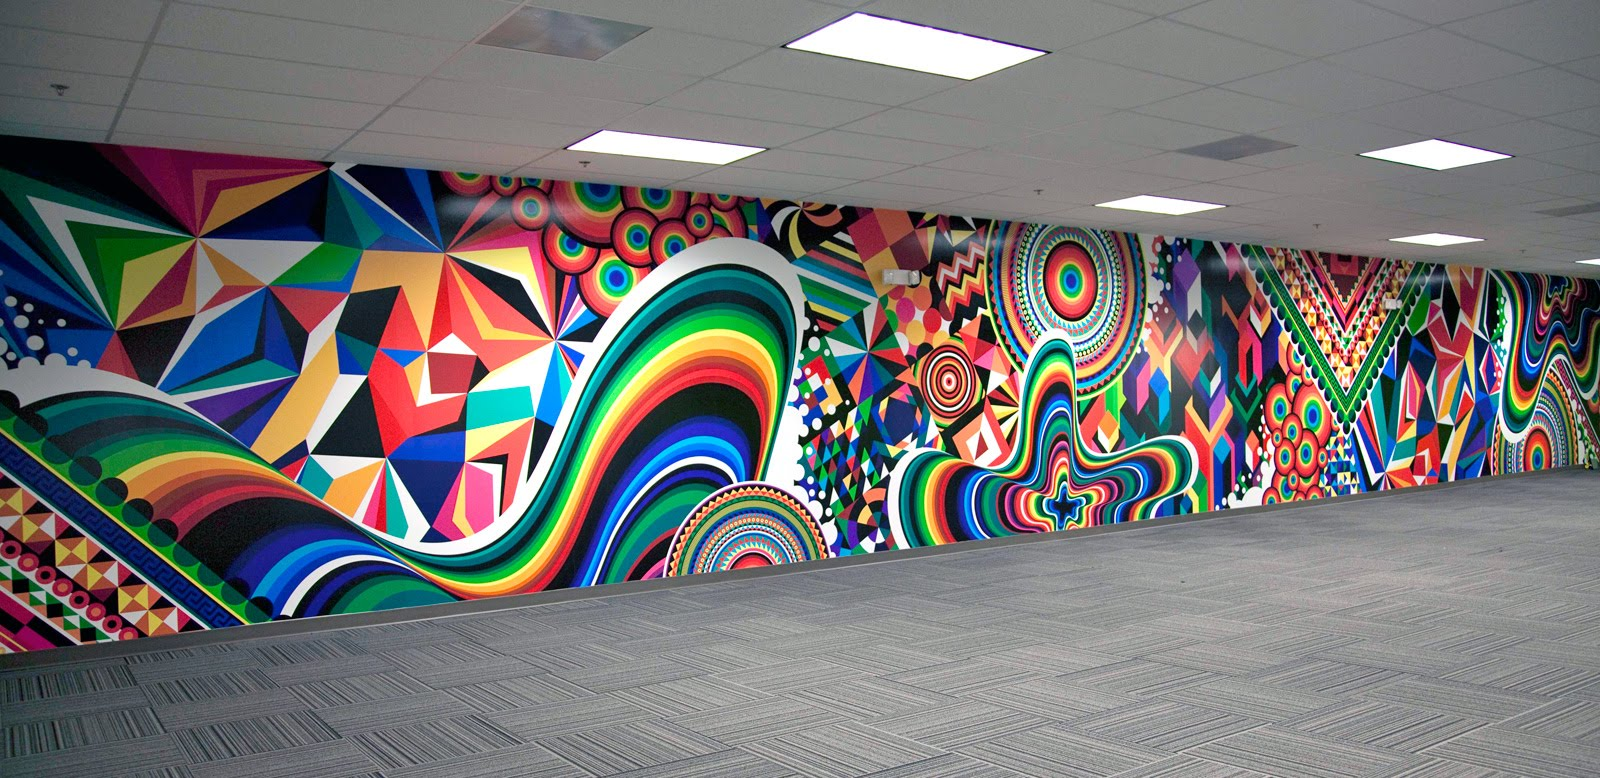 Mwm news blog super sized pop art op art for Abstract mural art